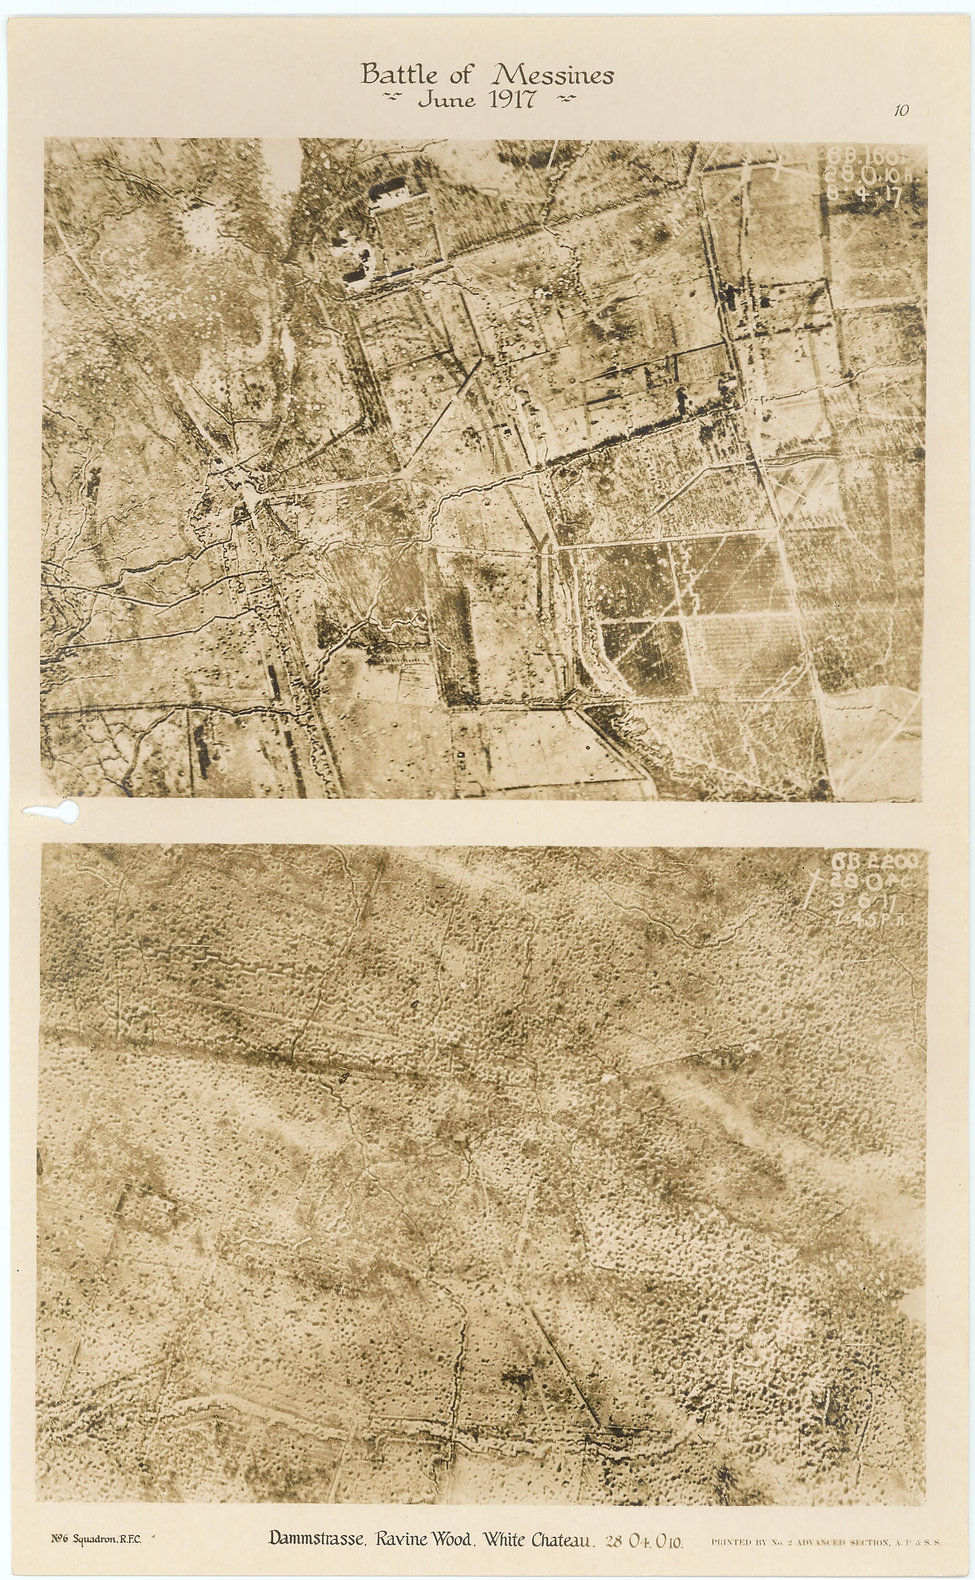 Aerial photos of Dammstrasse, Ravine Wood and the White Chateau near Palinbeek, taken by a 6 Squadron RE8 before and after the pre bombardment of the Battle of Messines, 1917